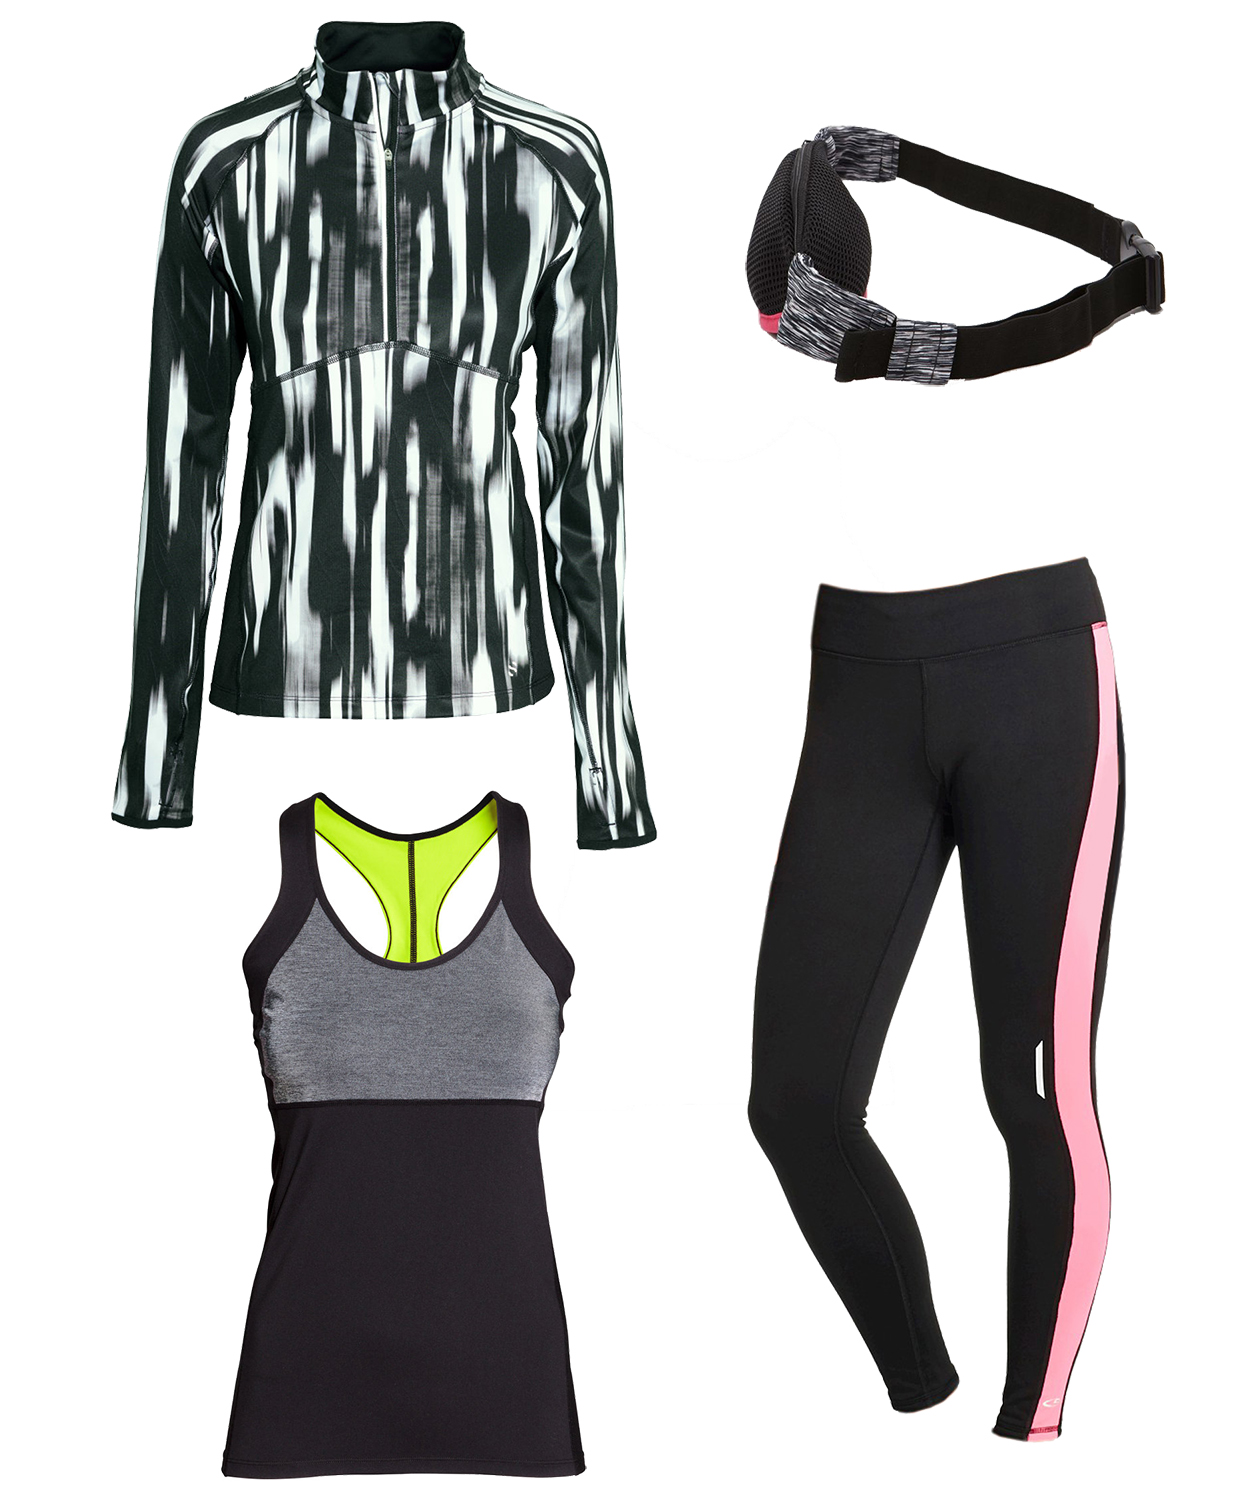 8 Cute Workout Outfits That Will Make You Want to Go to the Gym ... 818cf038d205